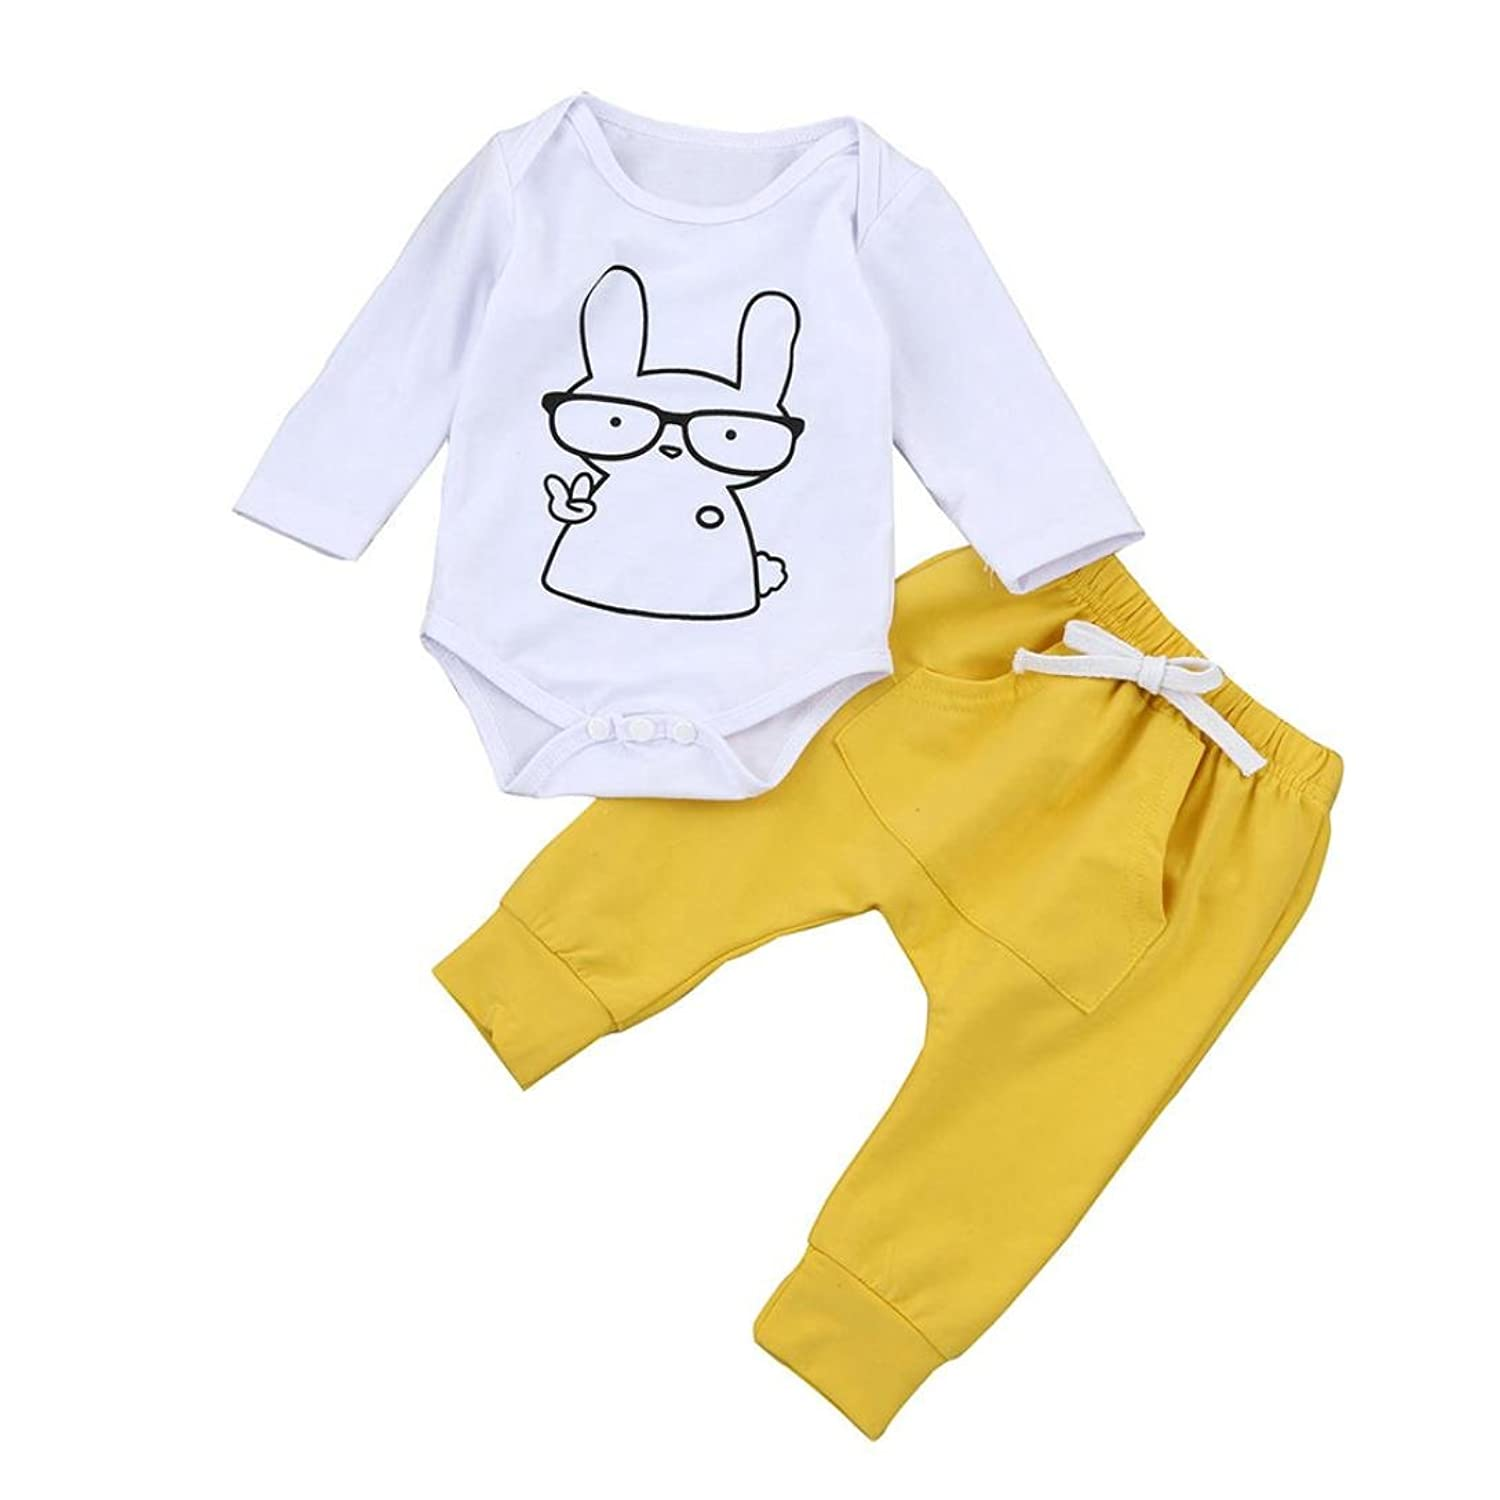 Amazon Baby Clothes Efaster Newborn Girls Boys Outfits Cartoon